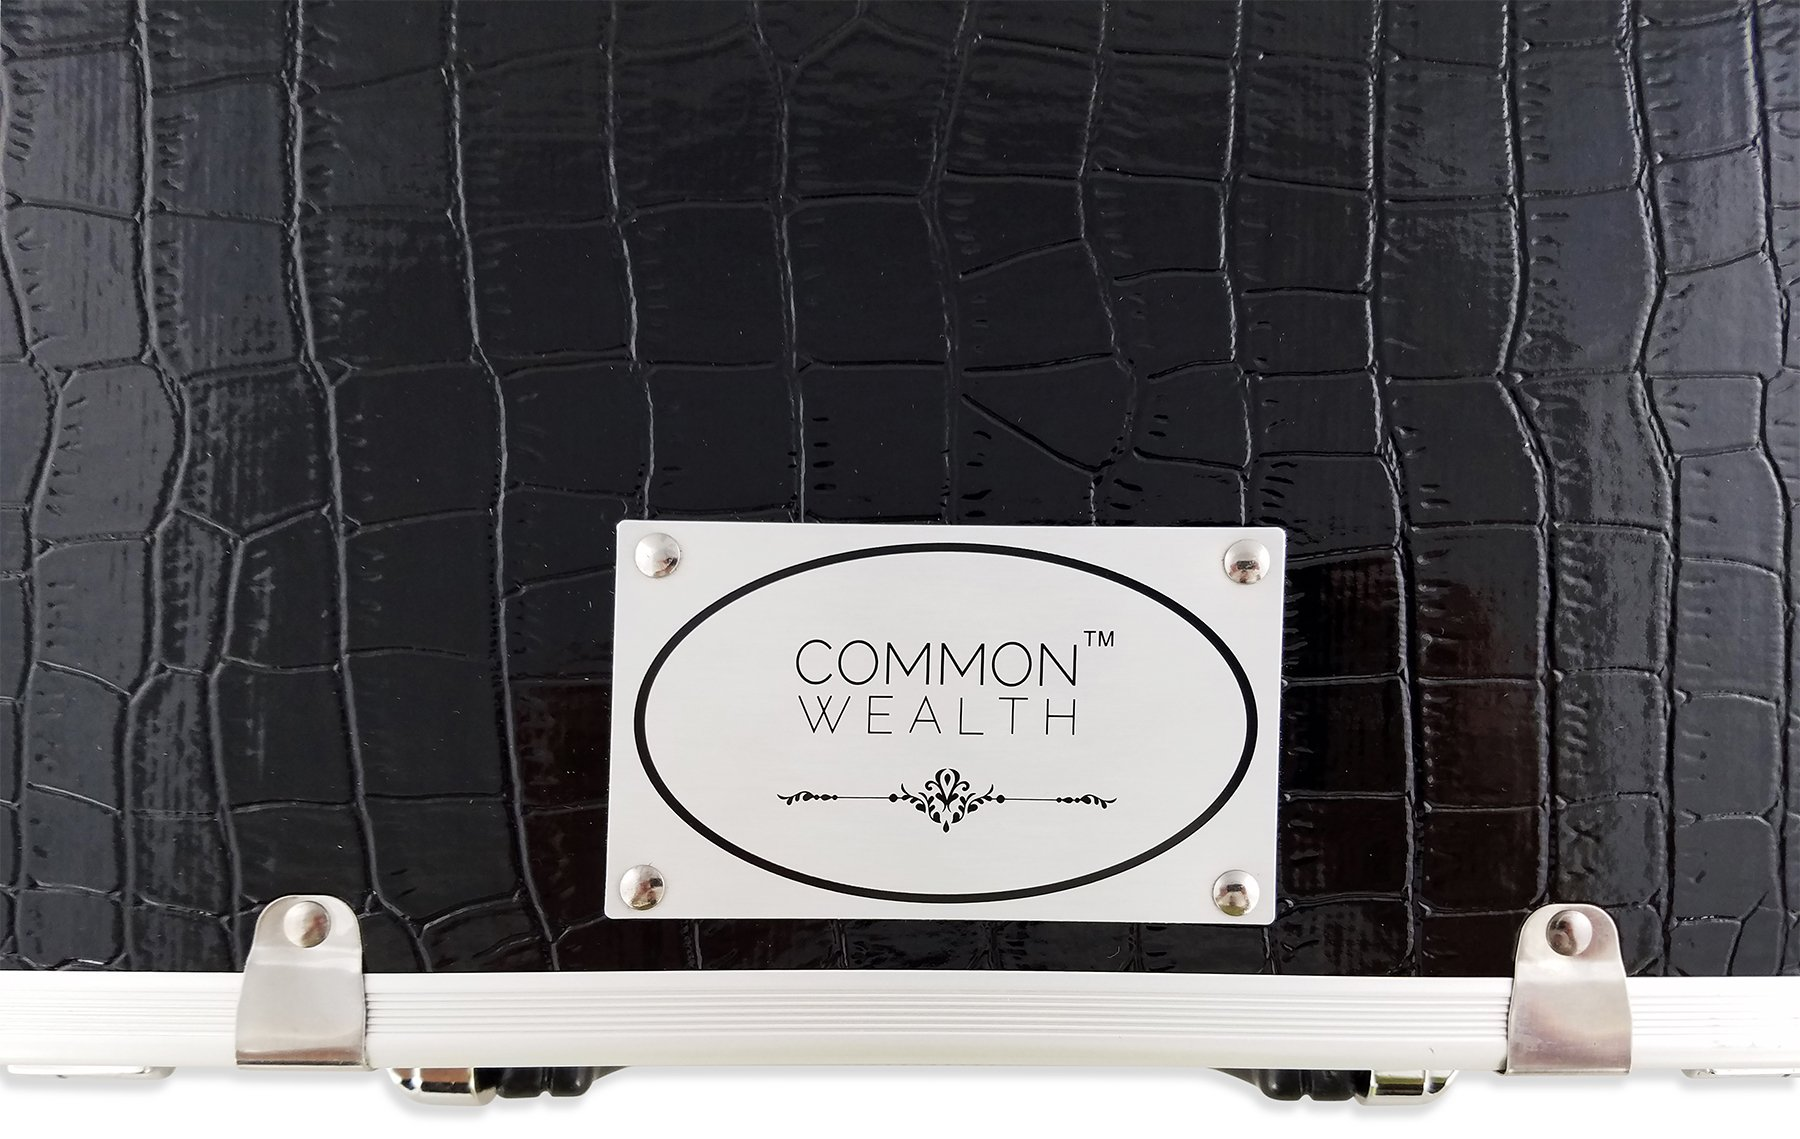 Common Wealth Barber Stylist Lock Attache Carrying Portable Travel Case Organizer For Clippers Trimmers Shears Scissors Combs Blades Styling Tools Black Crocodile Display Storage System by Commonwealth